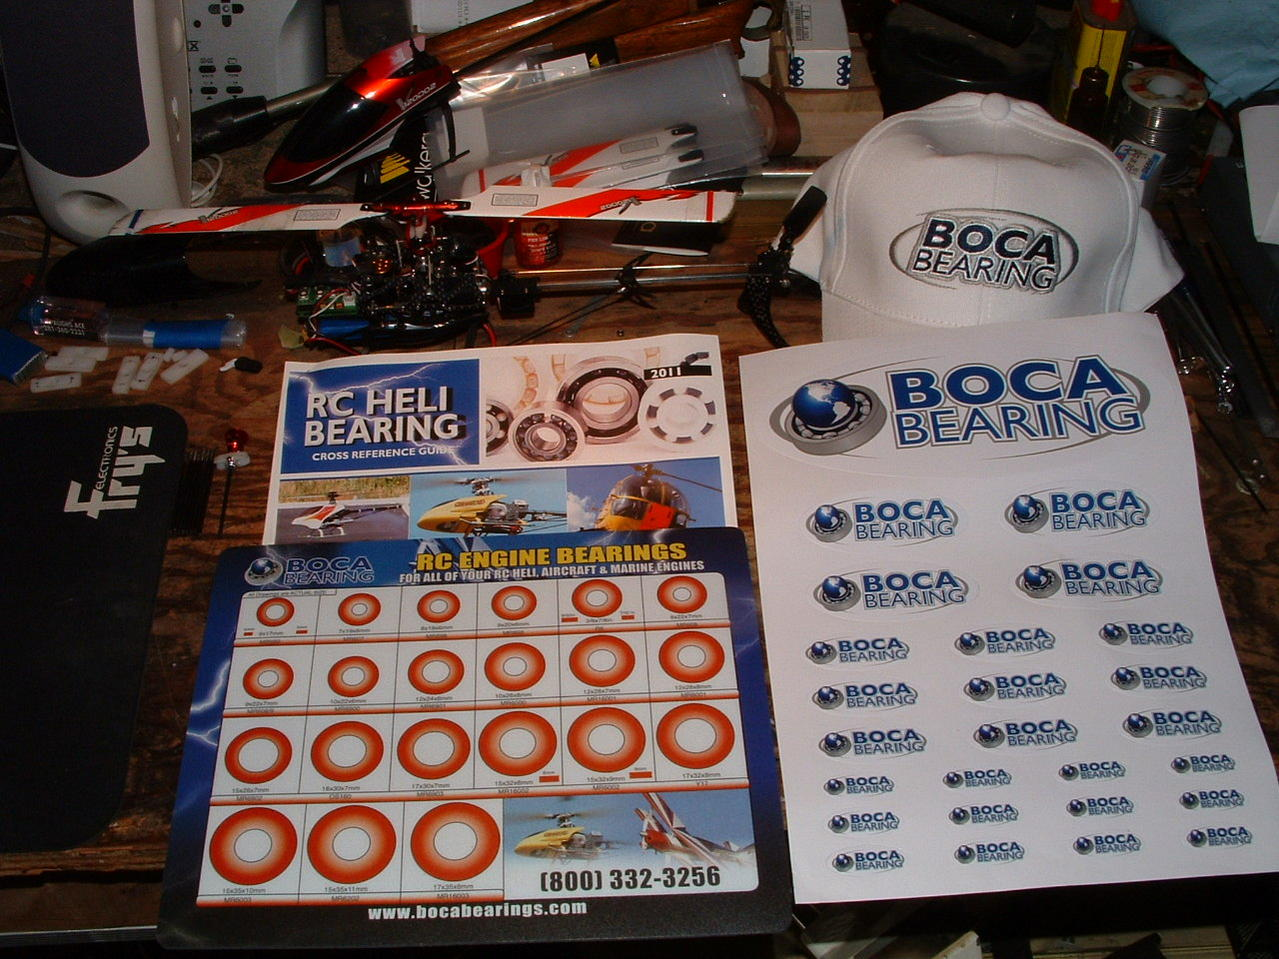 I recieved all this from Boca bearings free of charge for writing this bearing information in my blog. There is a hat,stickers,cool mouse pad and heli bearing kit price brochure.